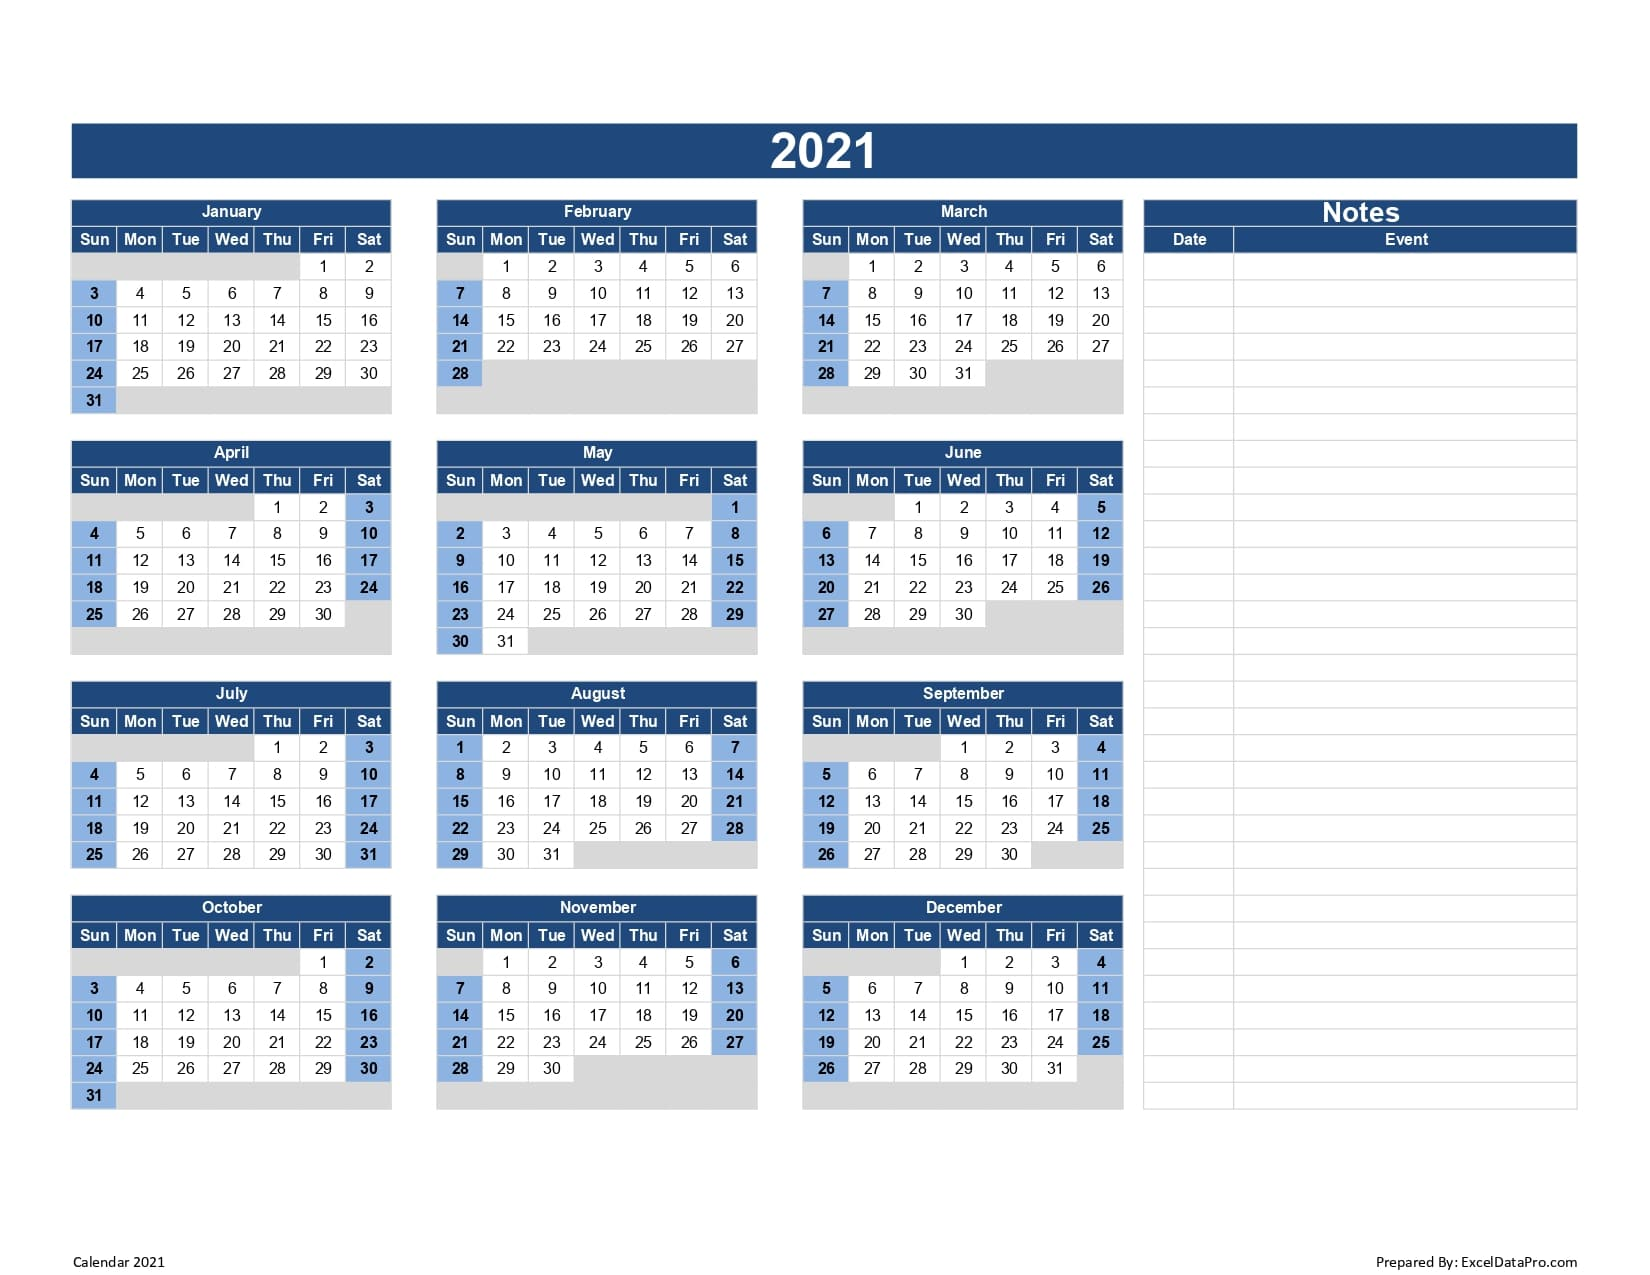 Calendar 2021 Excel Templates, Printable PDFs & Images ...